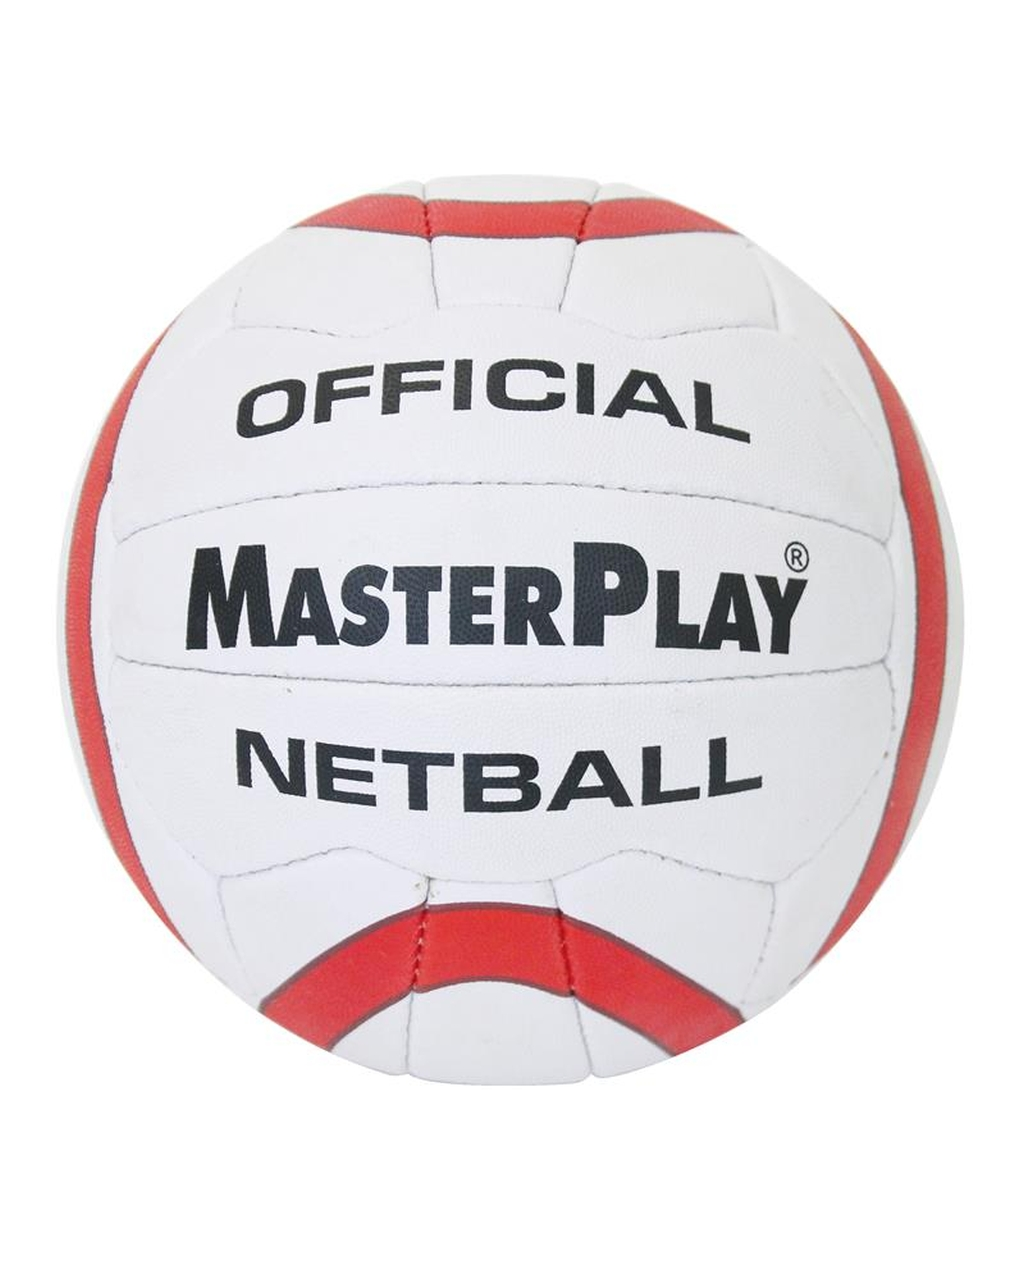 Masterplay Official Netball Size 5